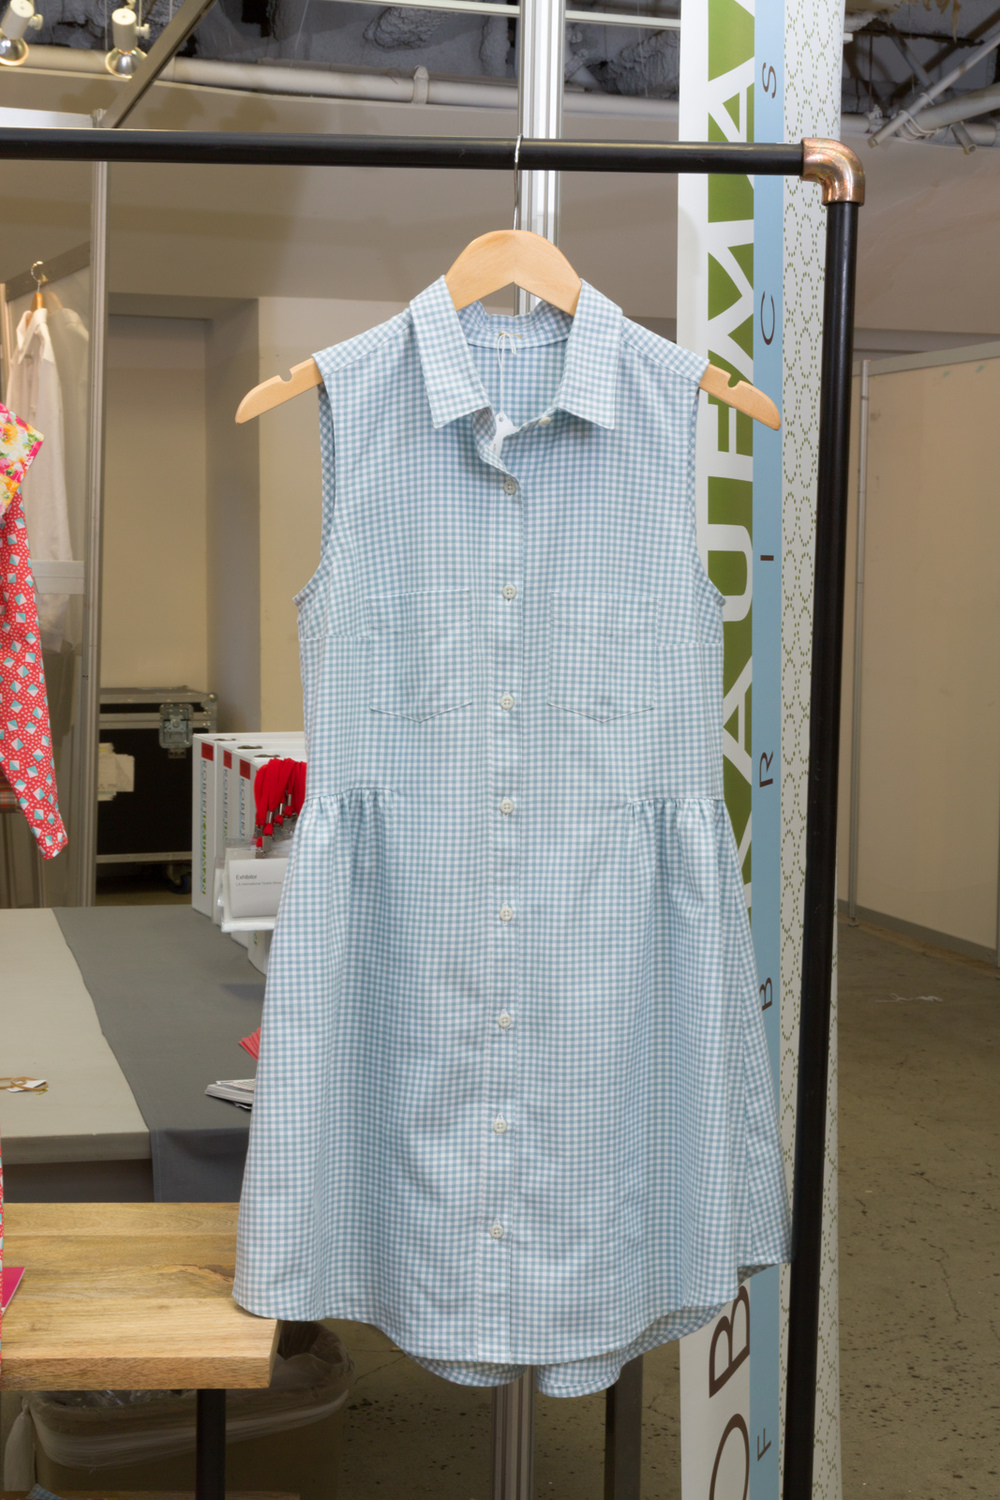 Alder Shirtdress by Grainline Studio, made by Elinor Nissley, featuring Carolina Gingham